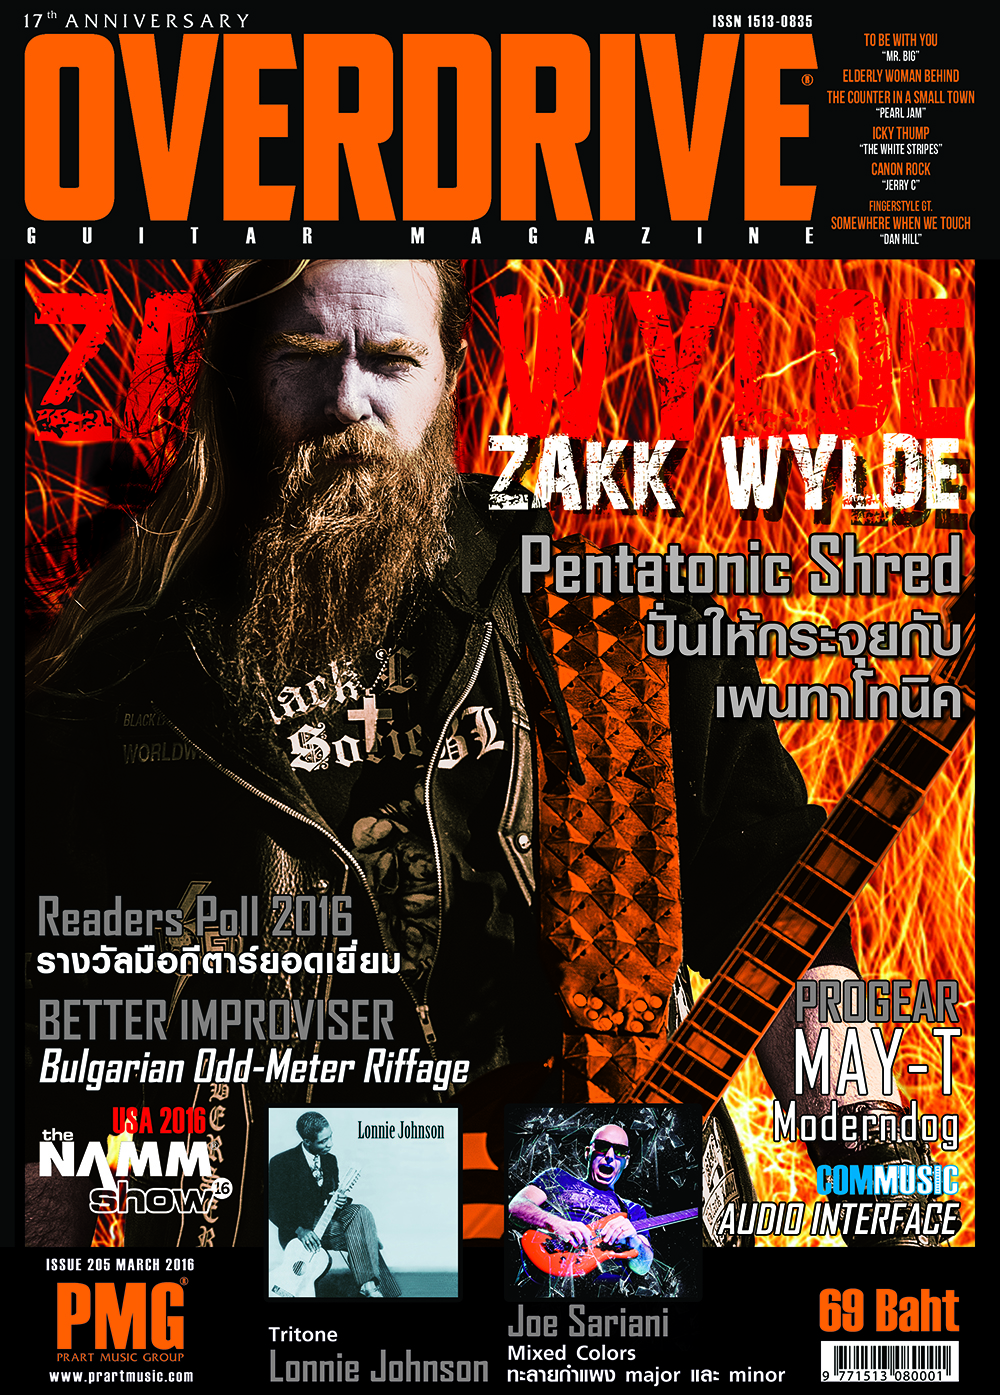 Overdrive Guitar Magazine issue 205